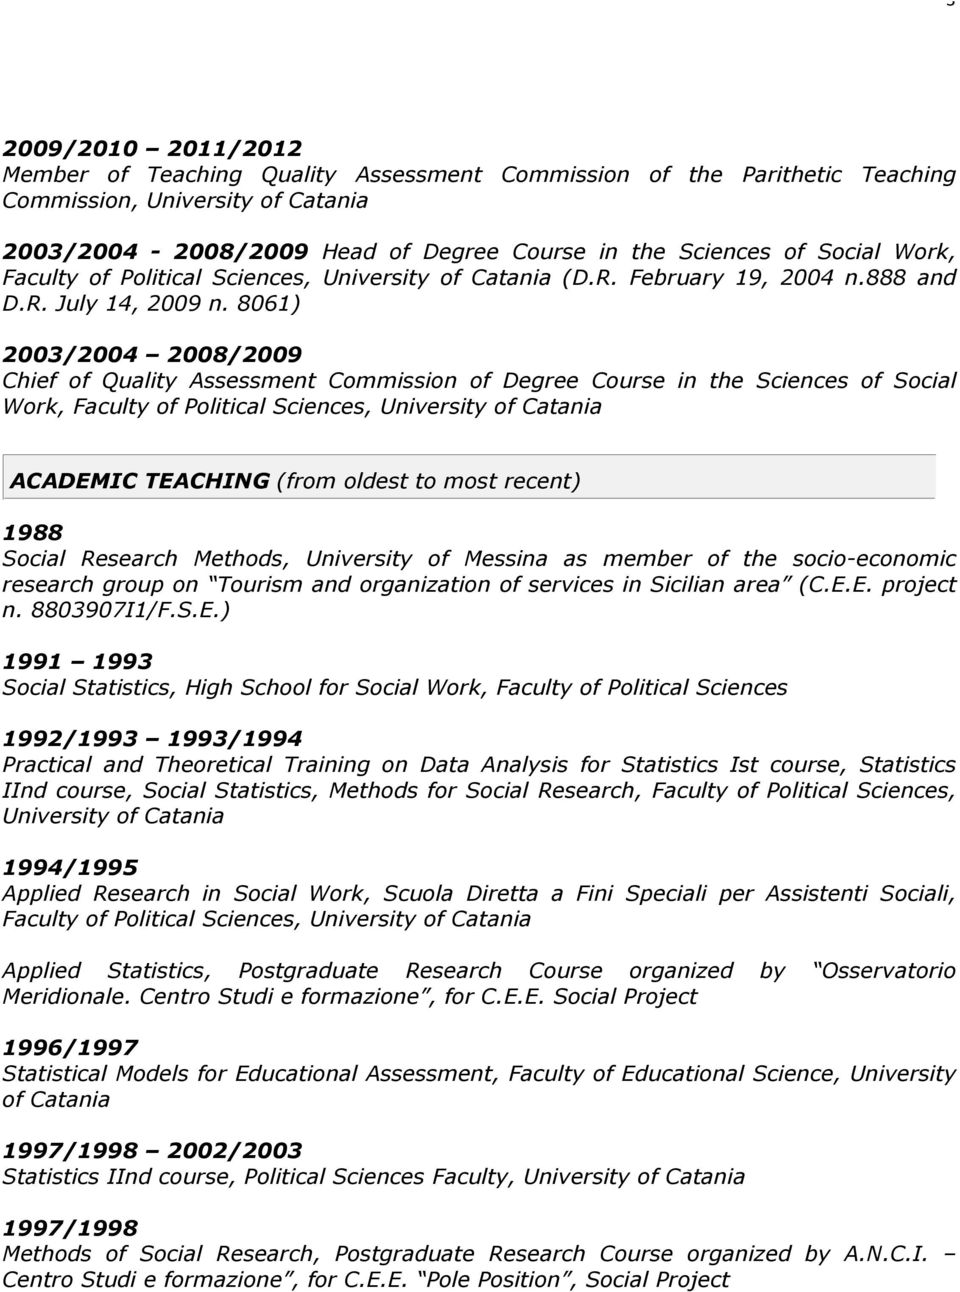 8061) 2003/2004 2008/2009 Chief of Quality Assessment Commission of Degree Course in the Sciences of Social Work, Faculty of Political Sciences, University of Catania ACADEMIC TEACHING (from oldest